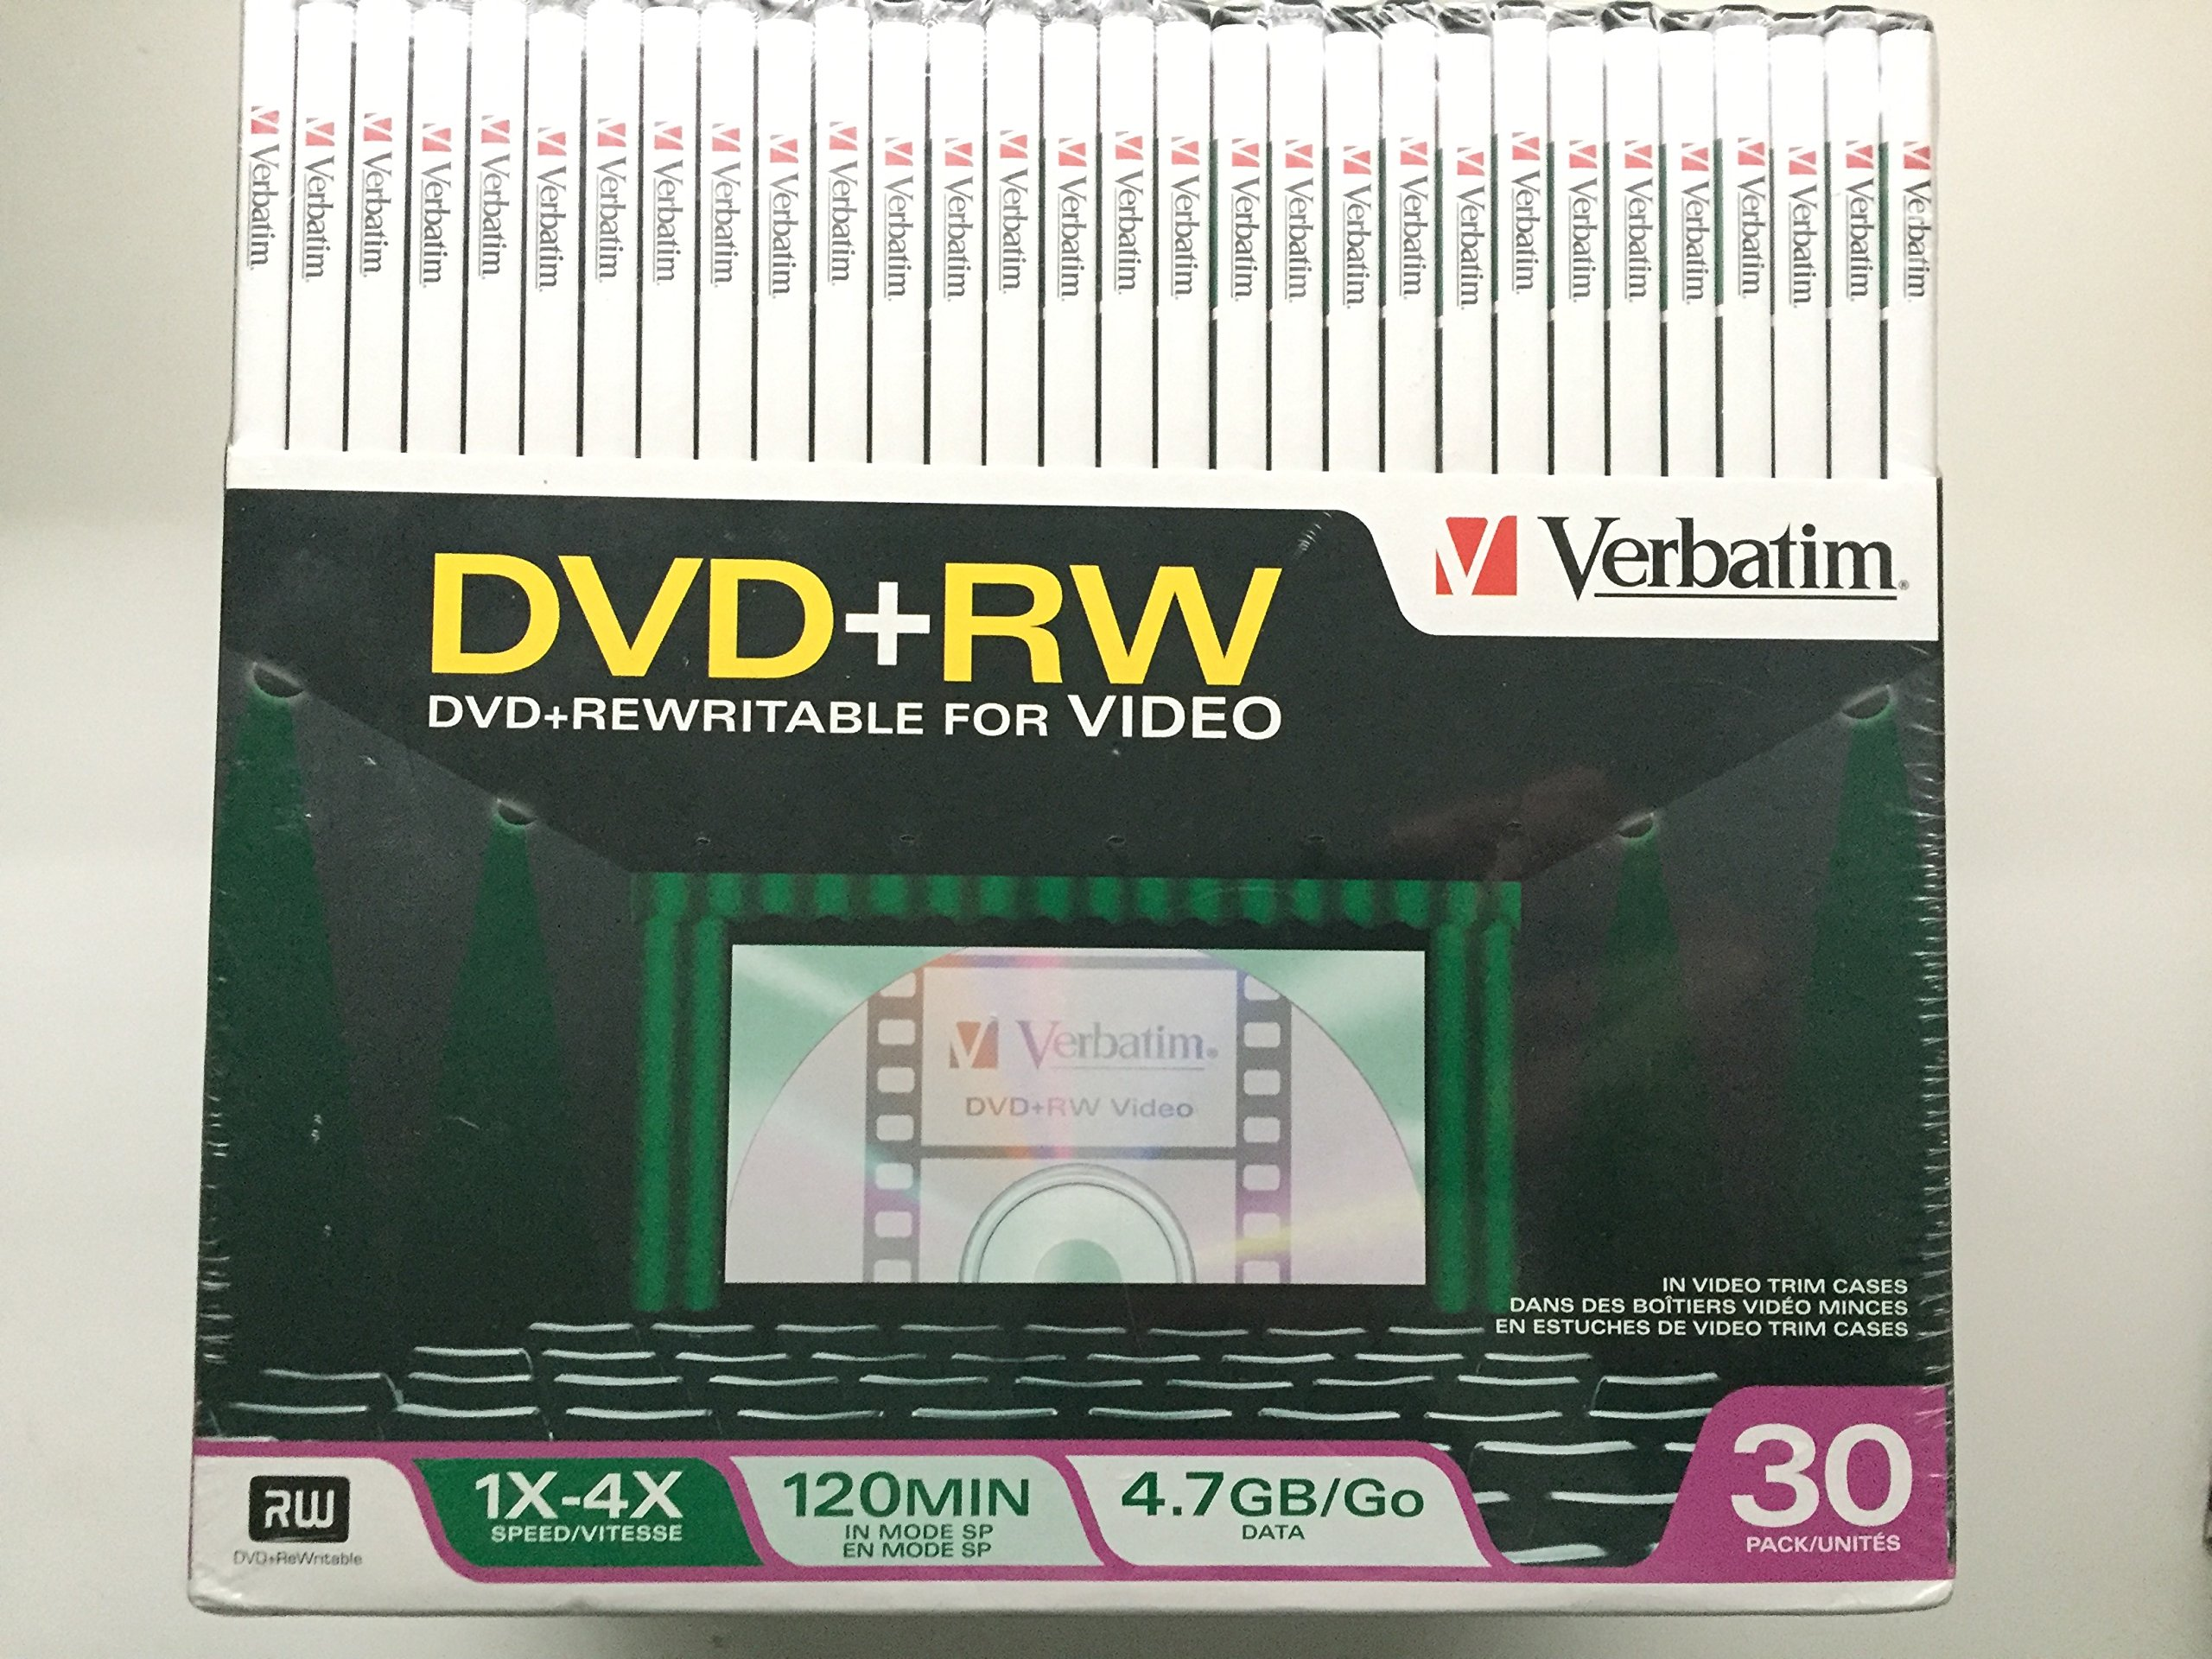 Verbatim 95085 4.7GB 120 Minutes 1X - 4X Rewritable DVD+RW Discs - 30 Pack With Video Trim Cases by Verbatim